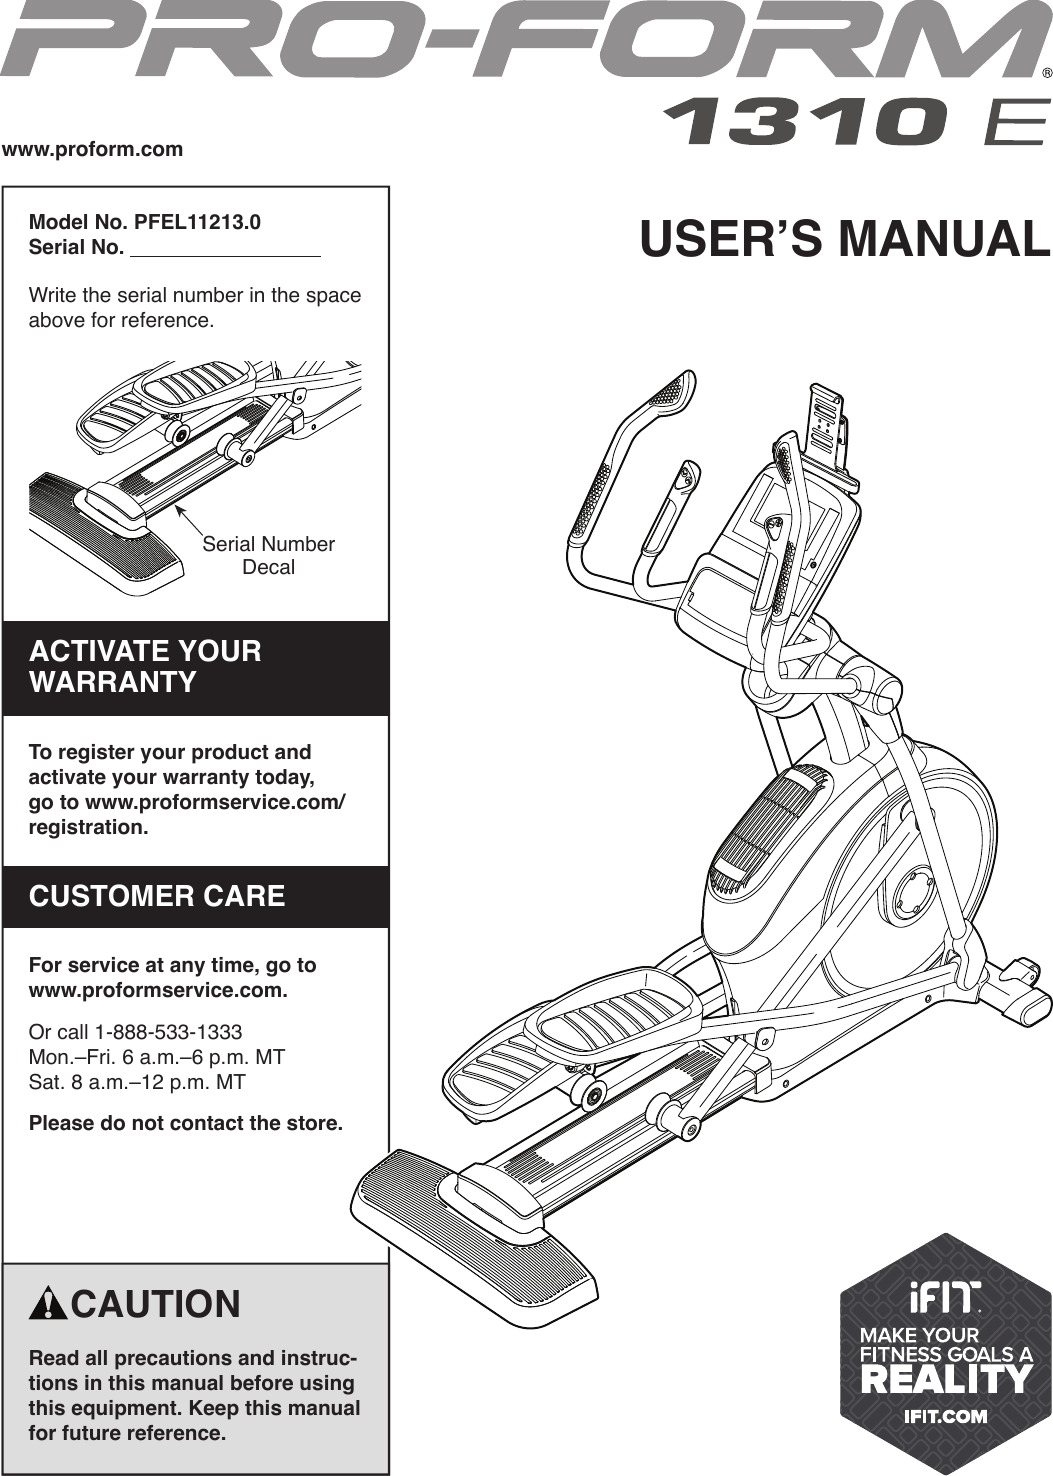 Proform Pfel112130 1310 E Elliptical Users Manual